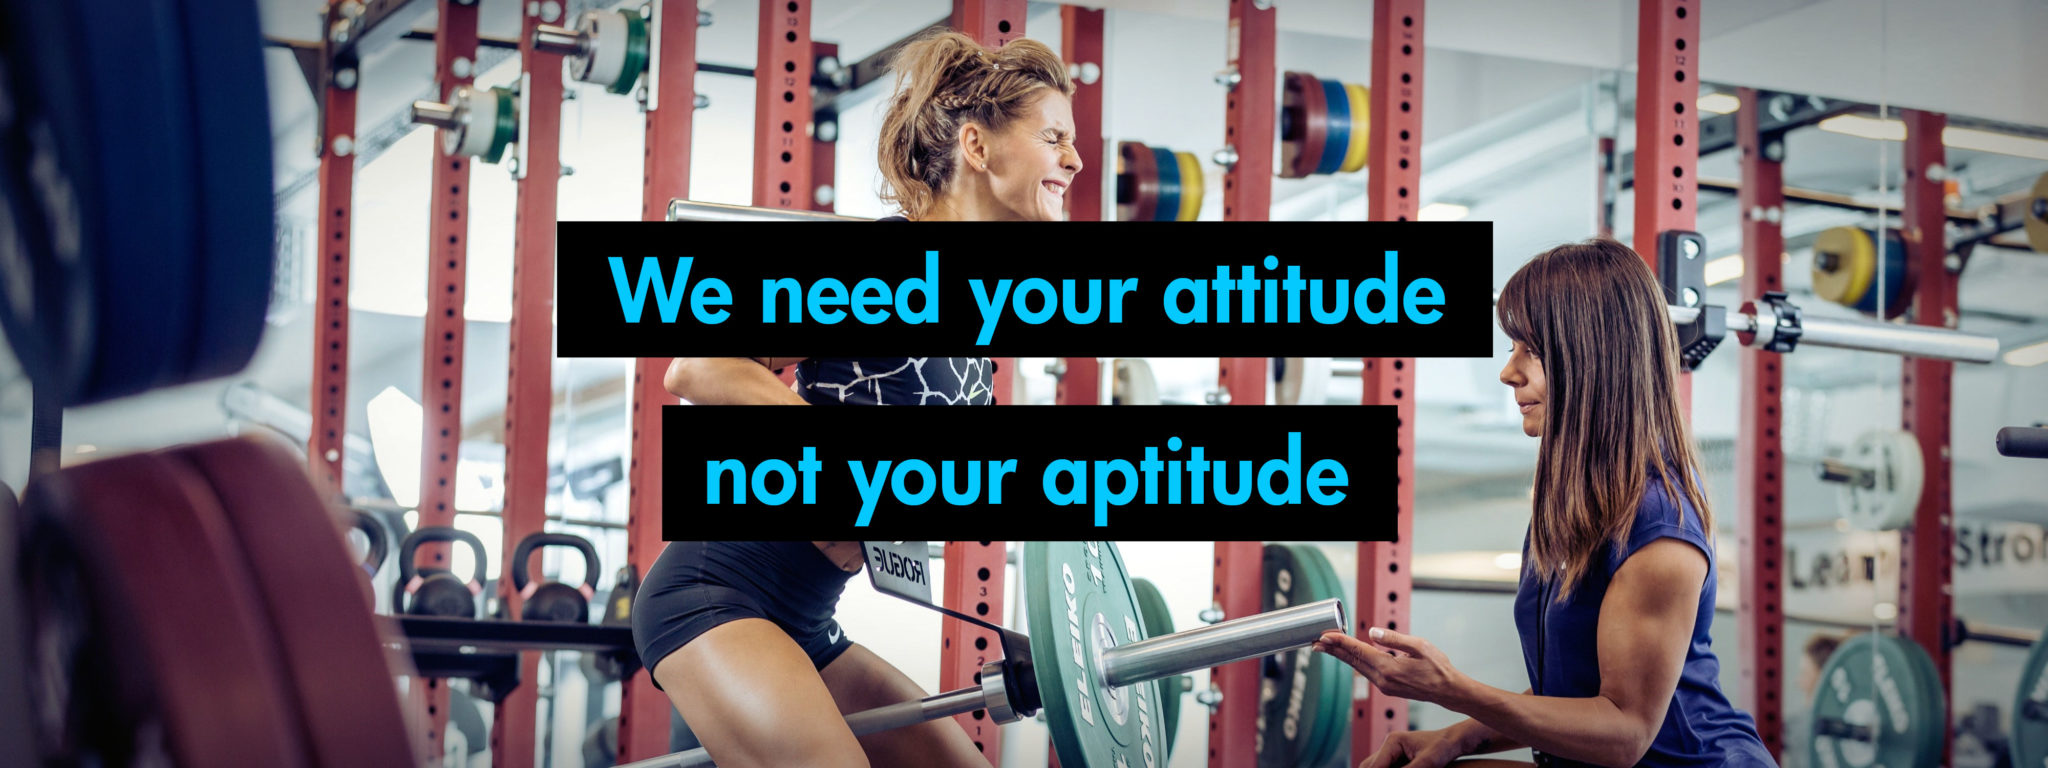 Our Philosophy at The FitRoom